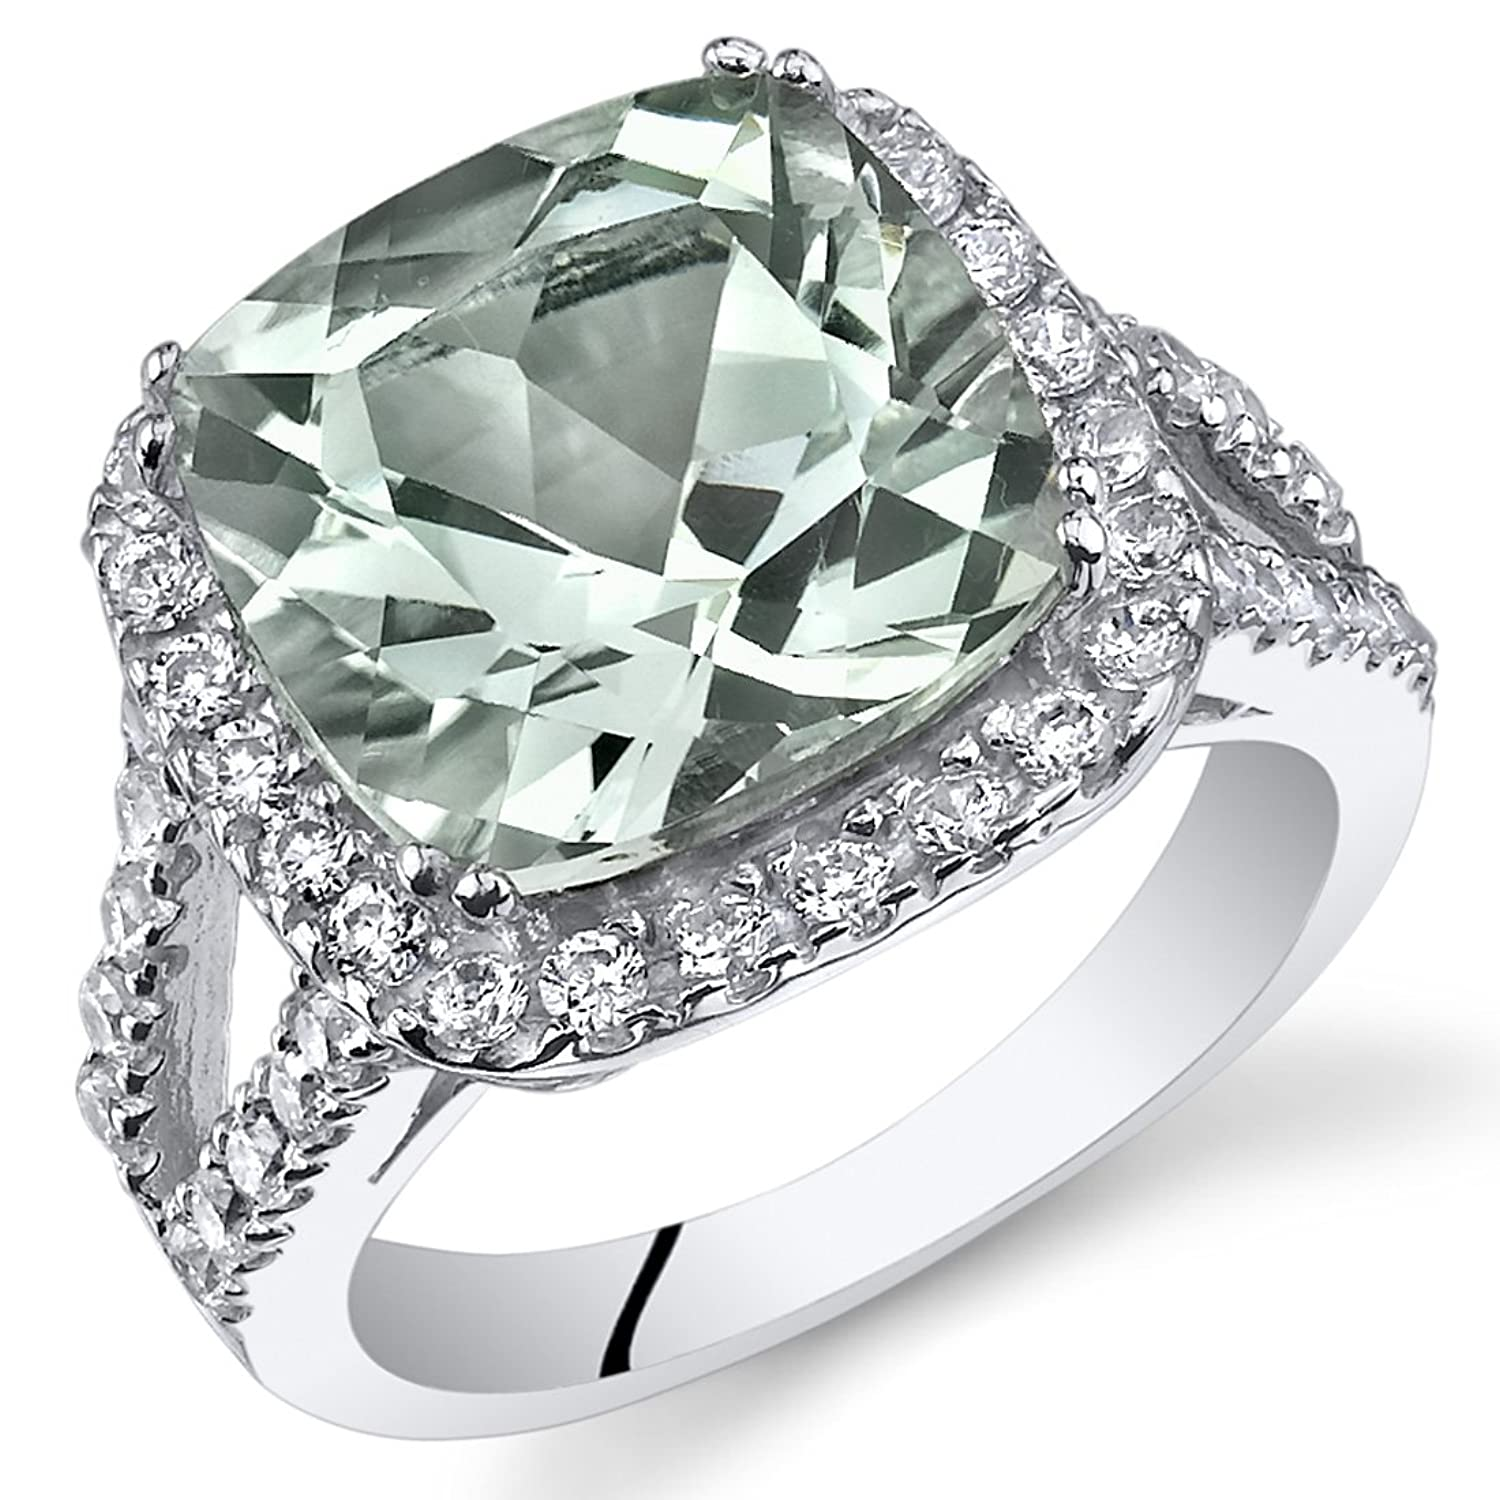 4.75 Carats Cushion Cut Green Amethyst Ring Sterling Silver Sizes 5 to 9